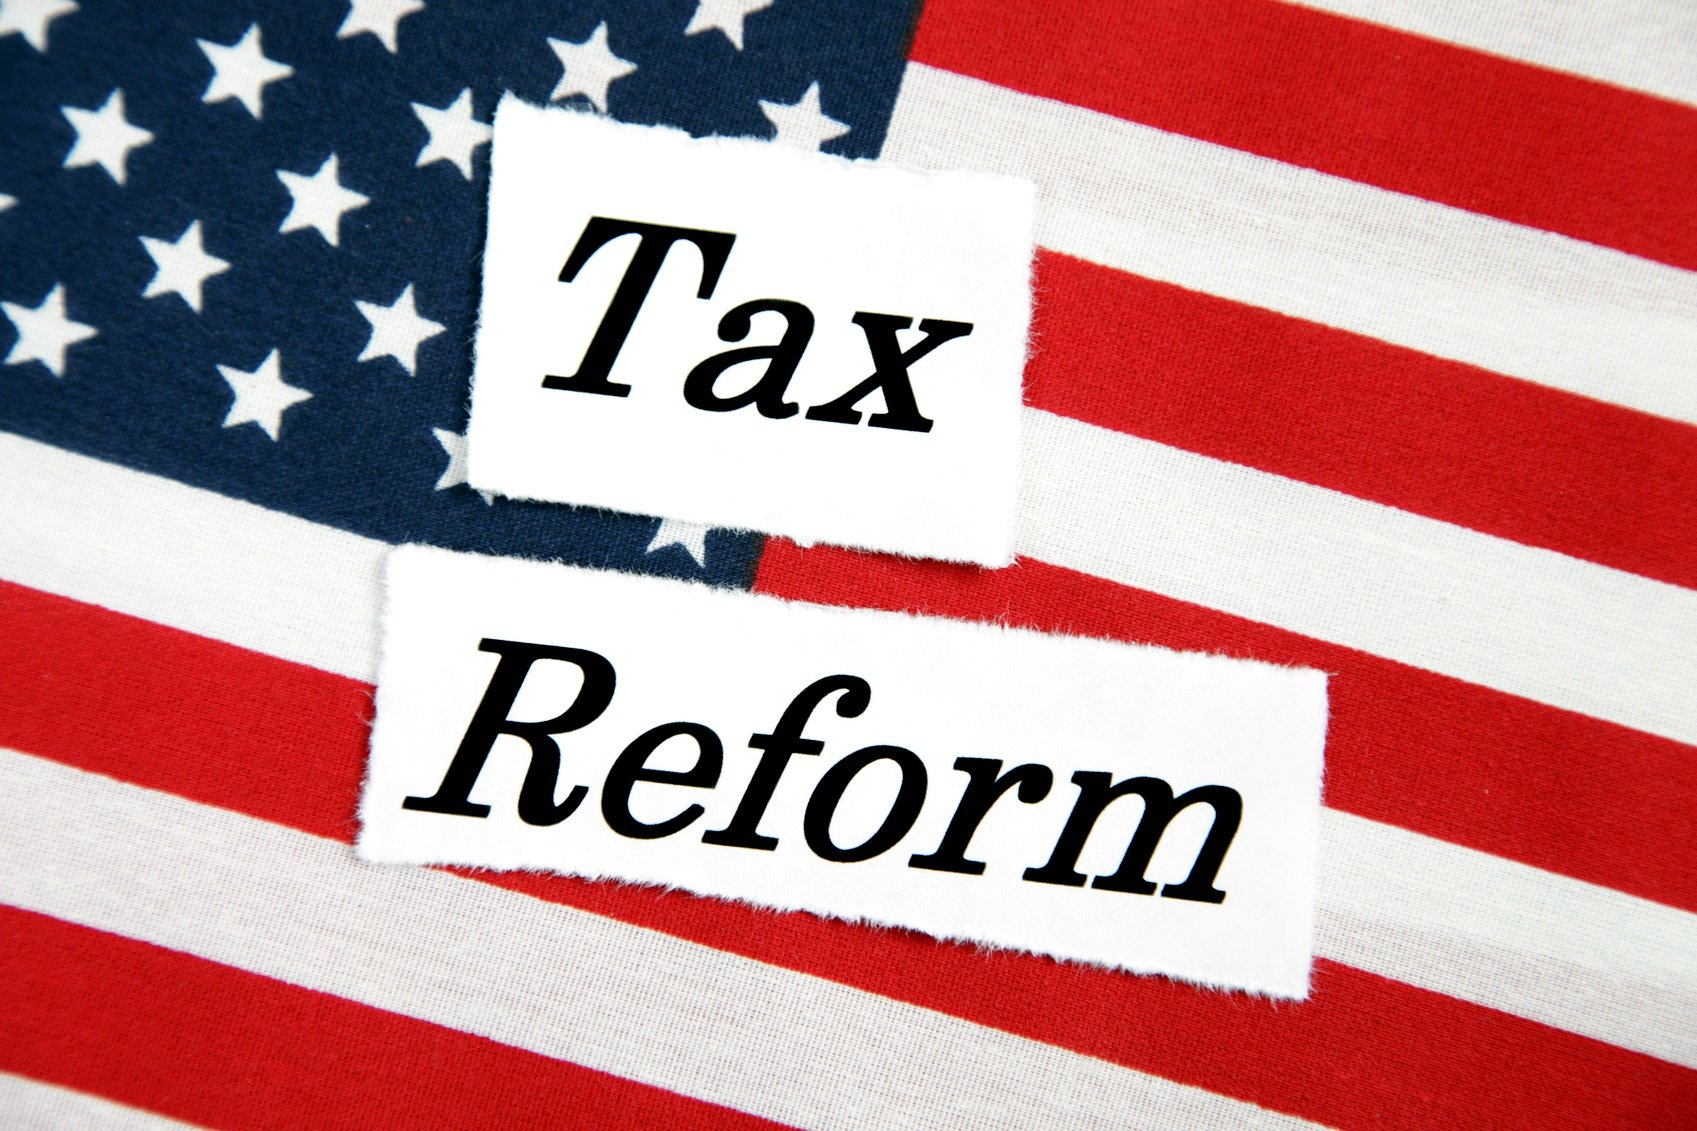 Tax Reform Act of 1986